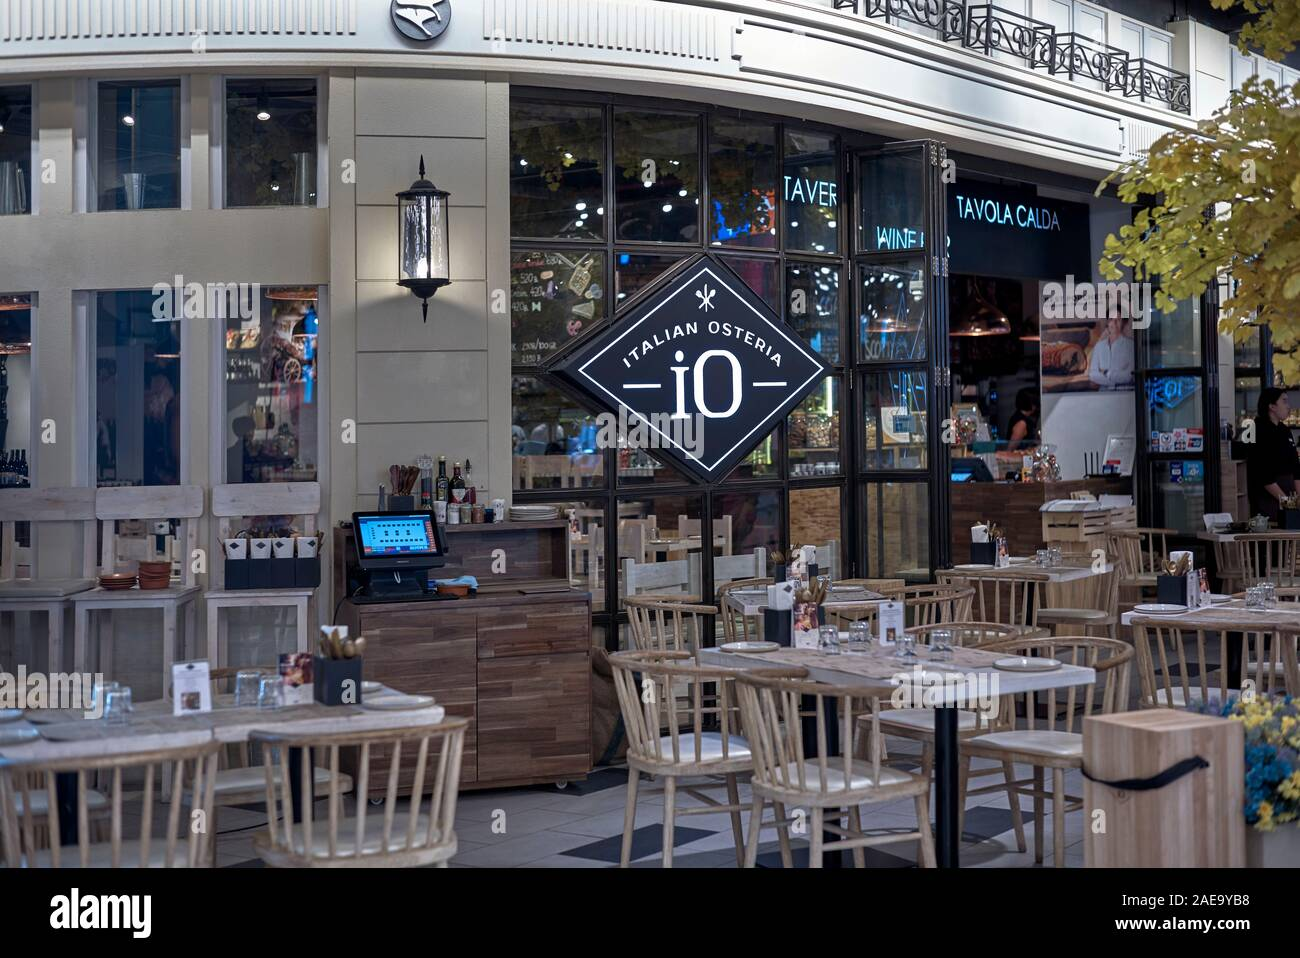 Italian Restaurant Exterior Terminal 21 Shopping Mall Pattaya Thailand Southeast Asia Stock Photo Alamy